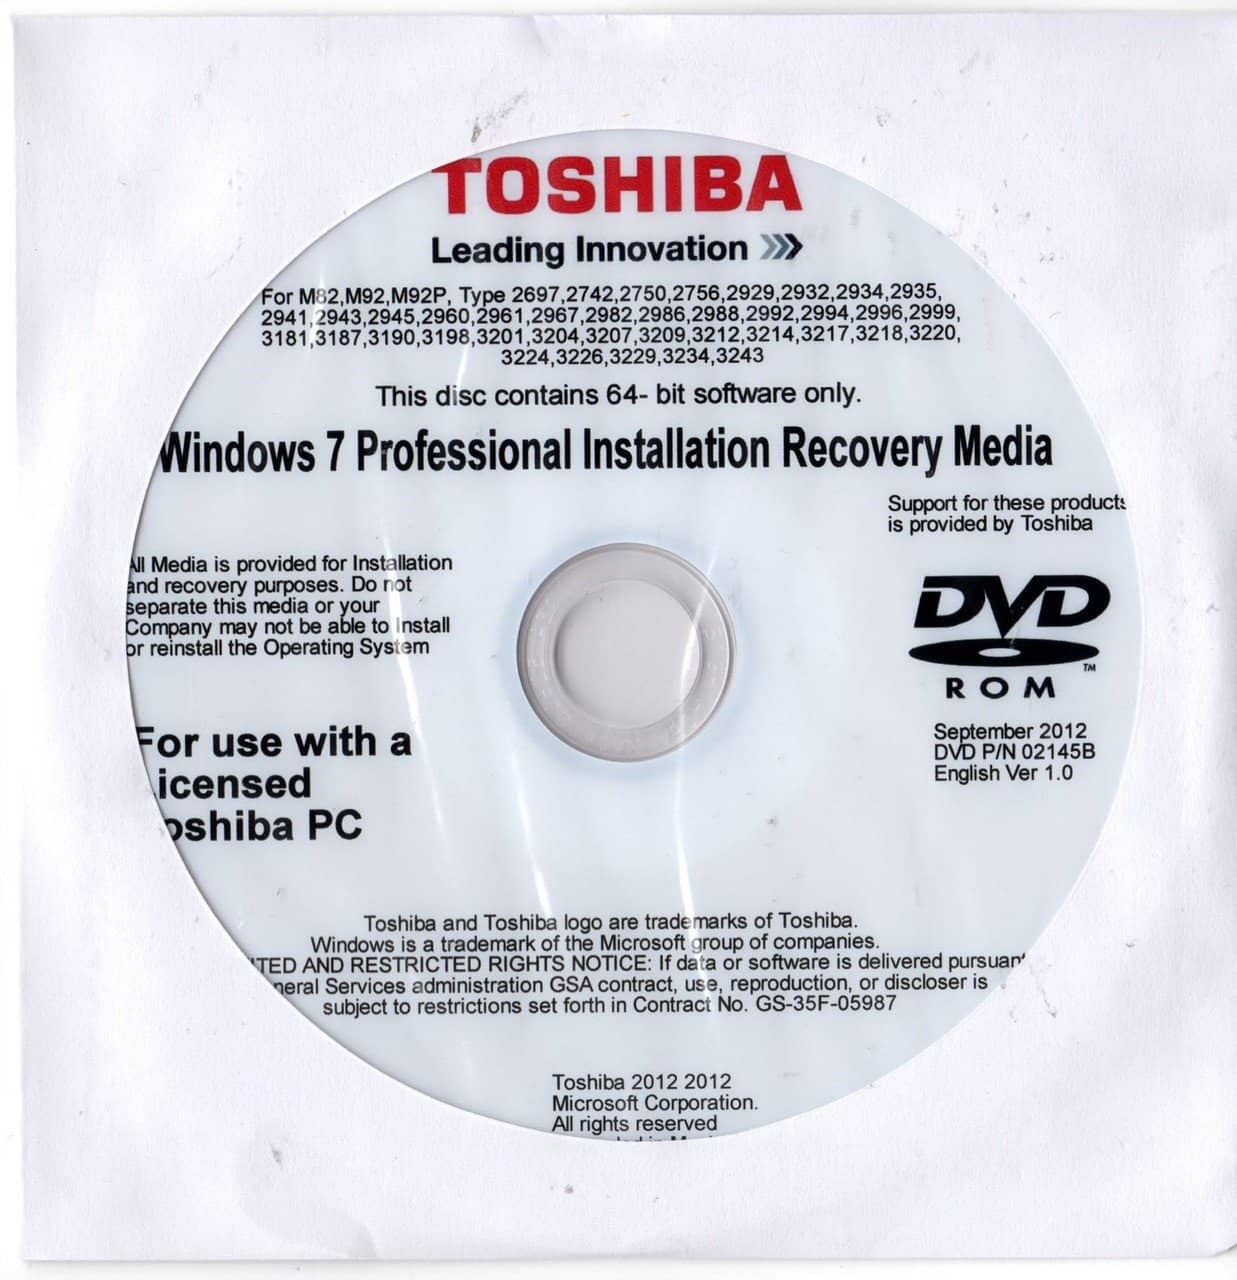 Toshiba windows 7 recovery disk iso